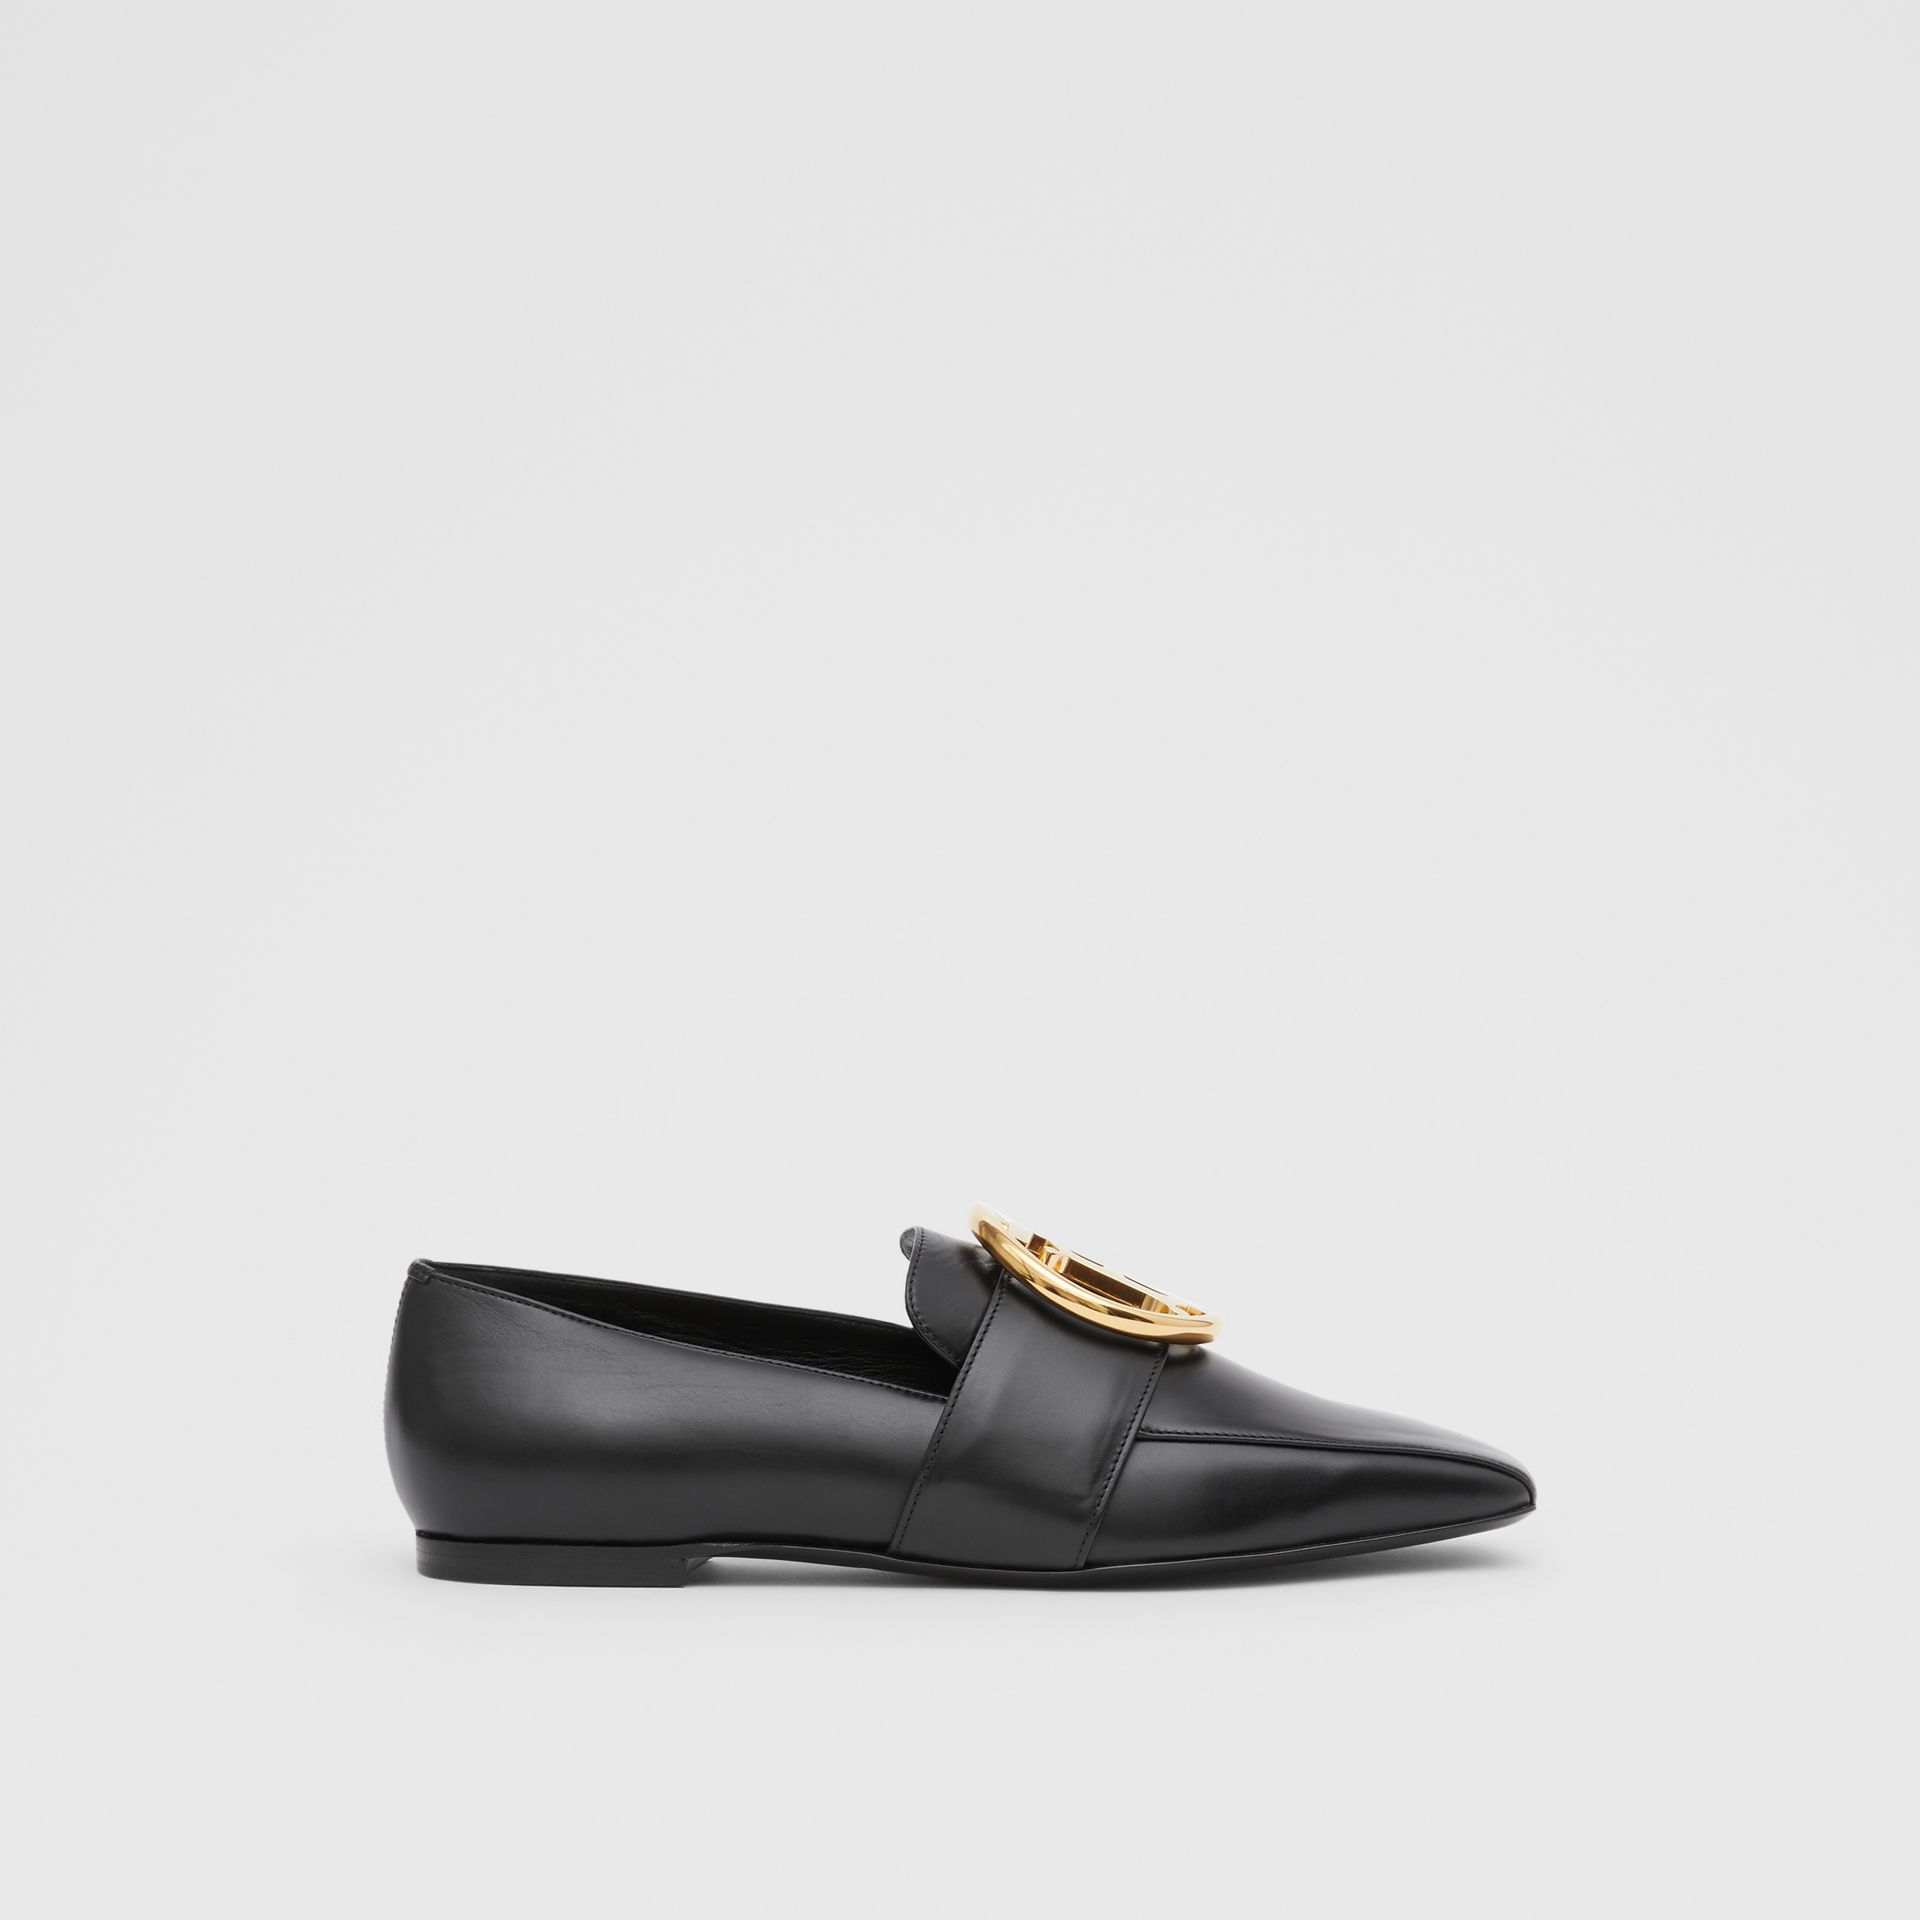 Monogram Motif Leather Loafers in Black - Women | Burberry - gallery image 5